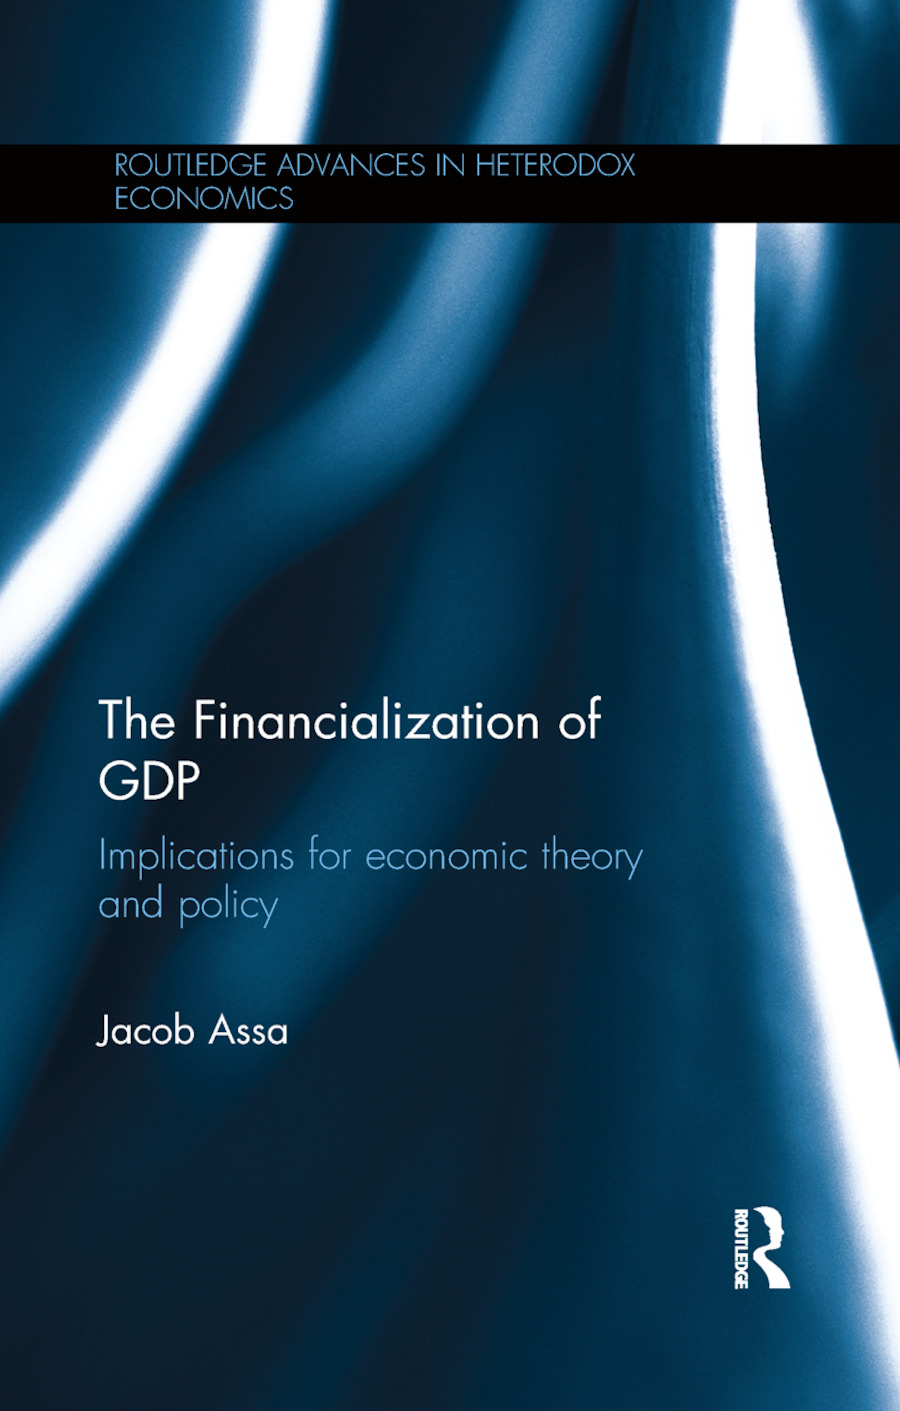 The Financialization of GDP